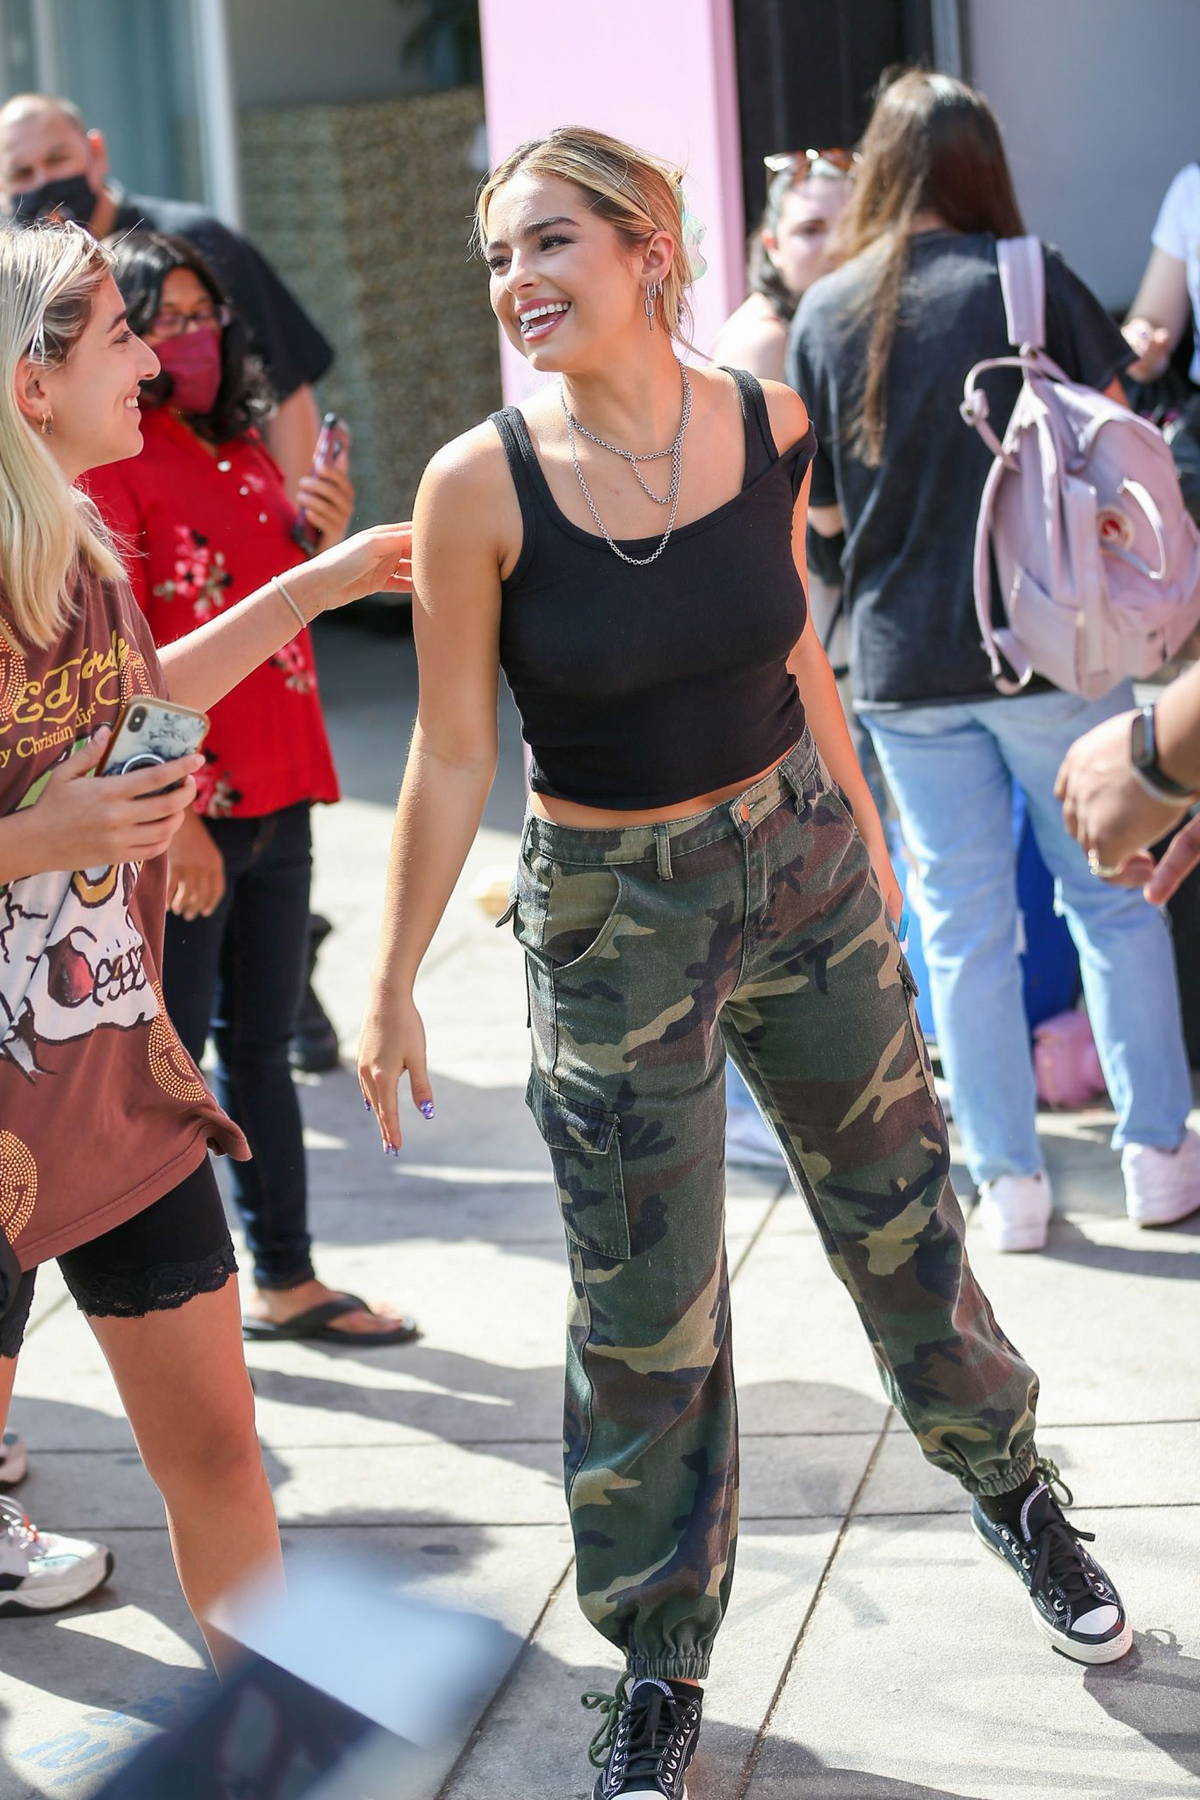 Addison Rae is all smiles while out wearing a black crop top and camouflage pants in Los Angeles